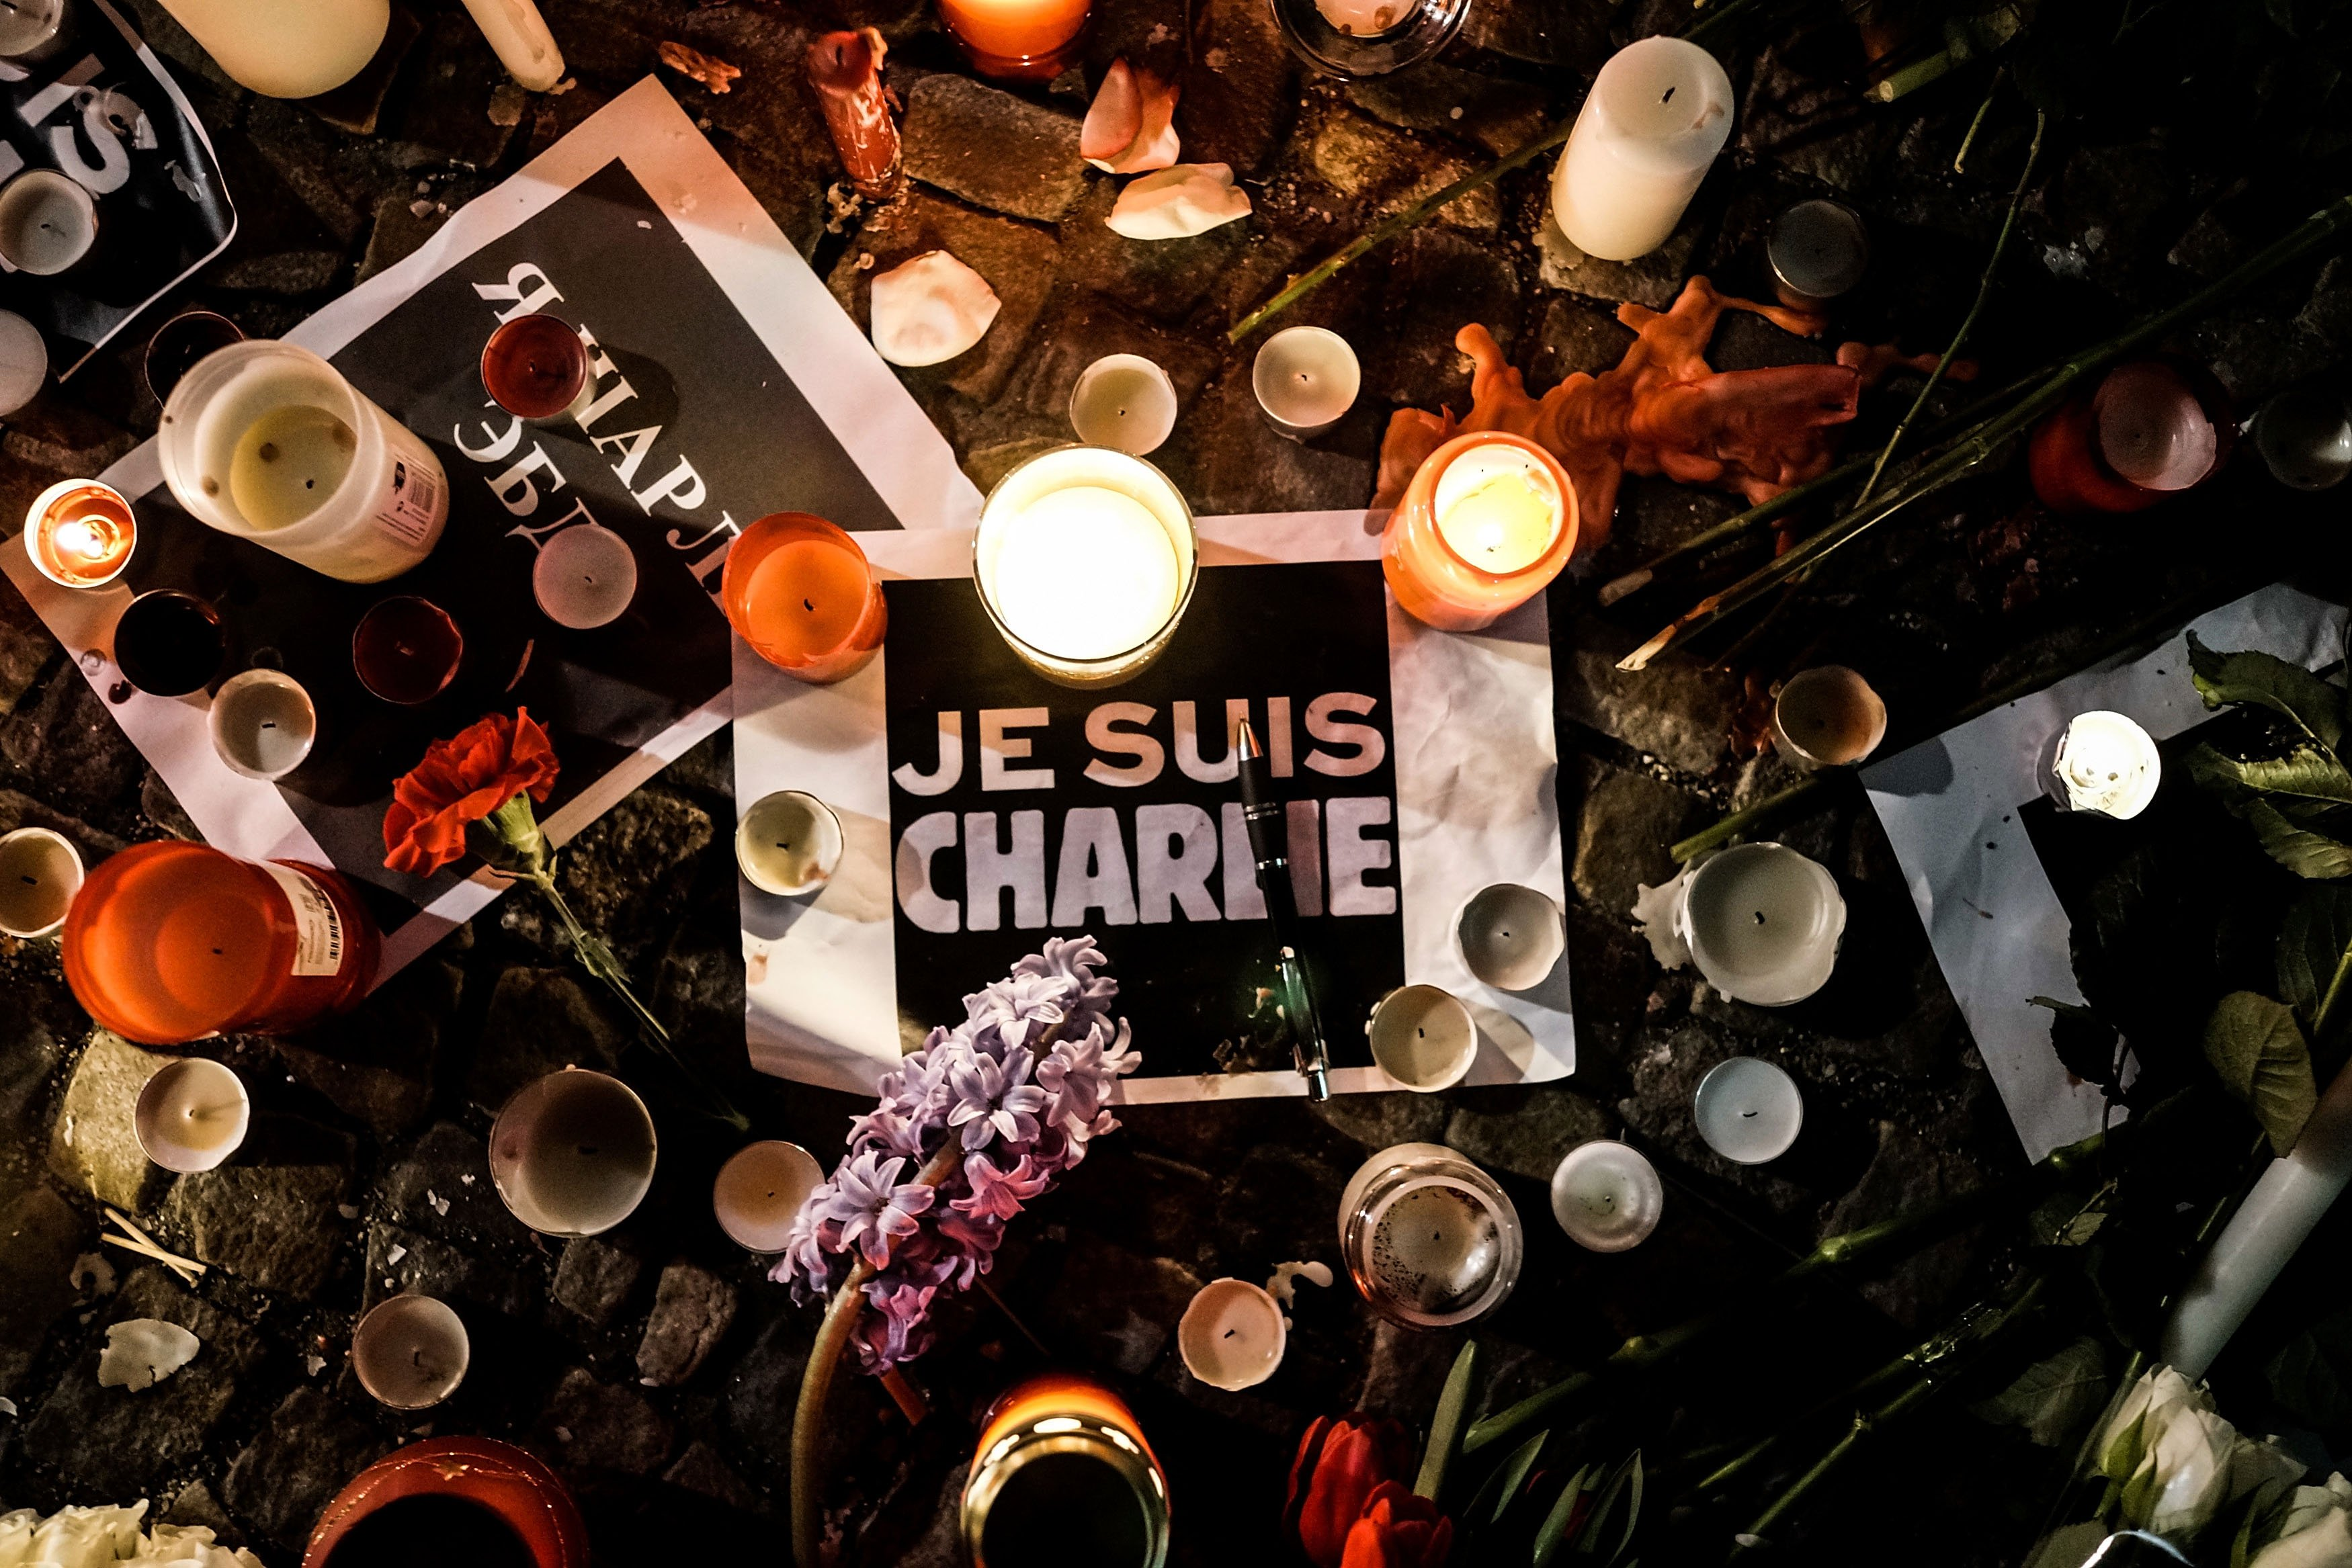 Papers with 'I am Charlie' displayed are left near candles at a vigil in front of the French Embassy following the terrorist attack in Paris on Jan. 7, 2015 in Berlin.